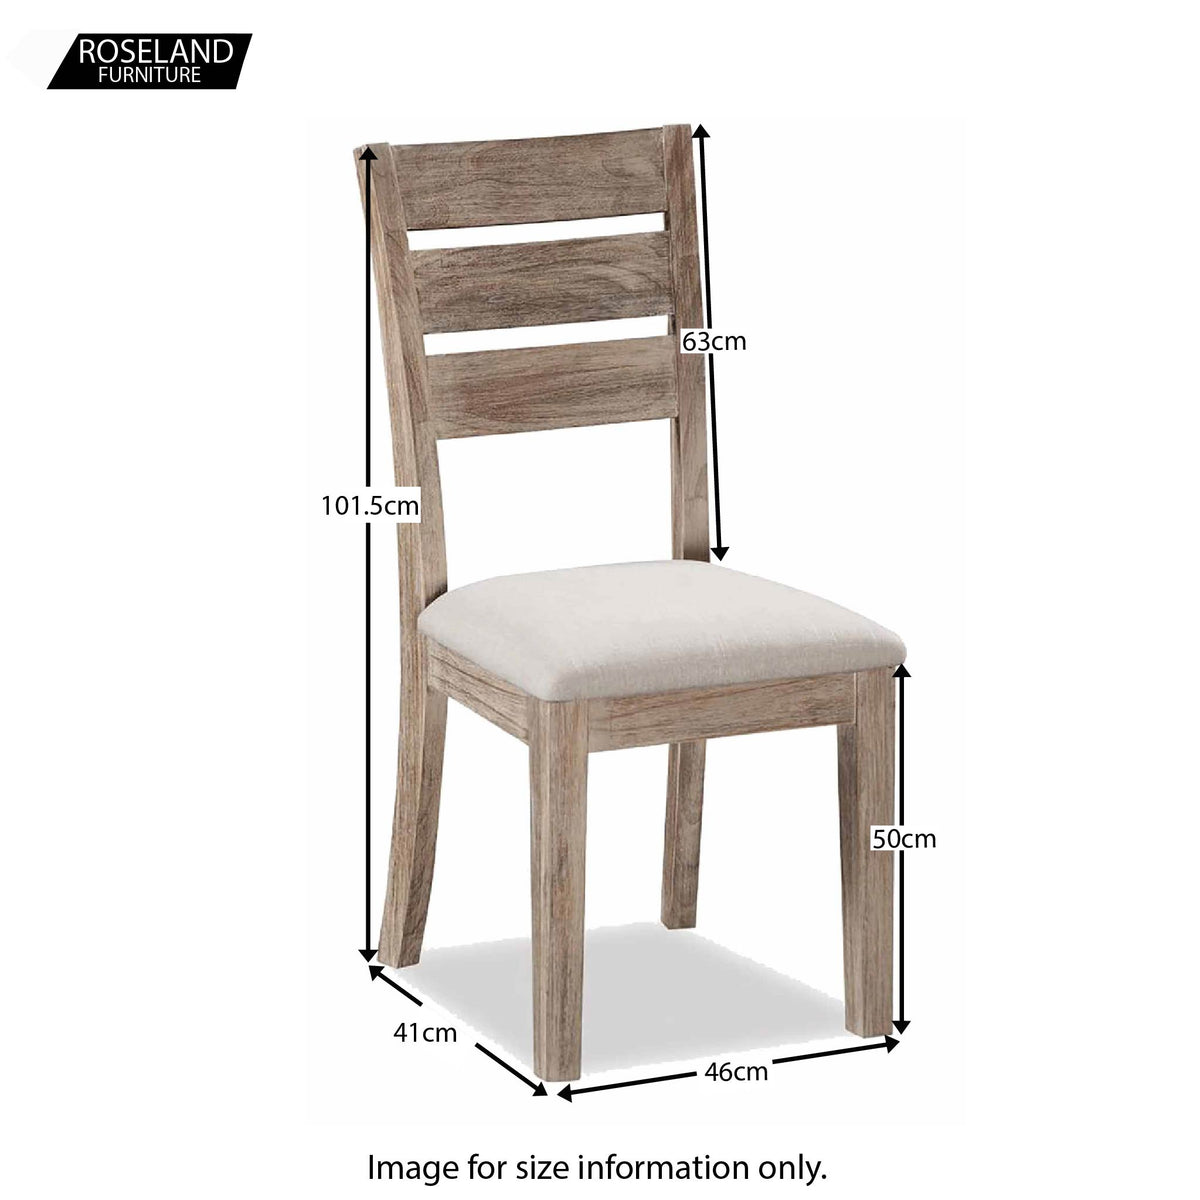 Rock Dining Chair - Size Guide